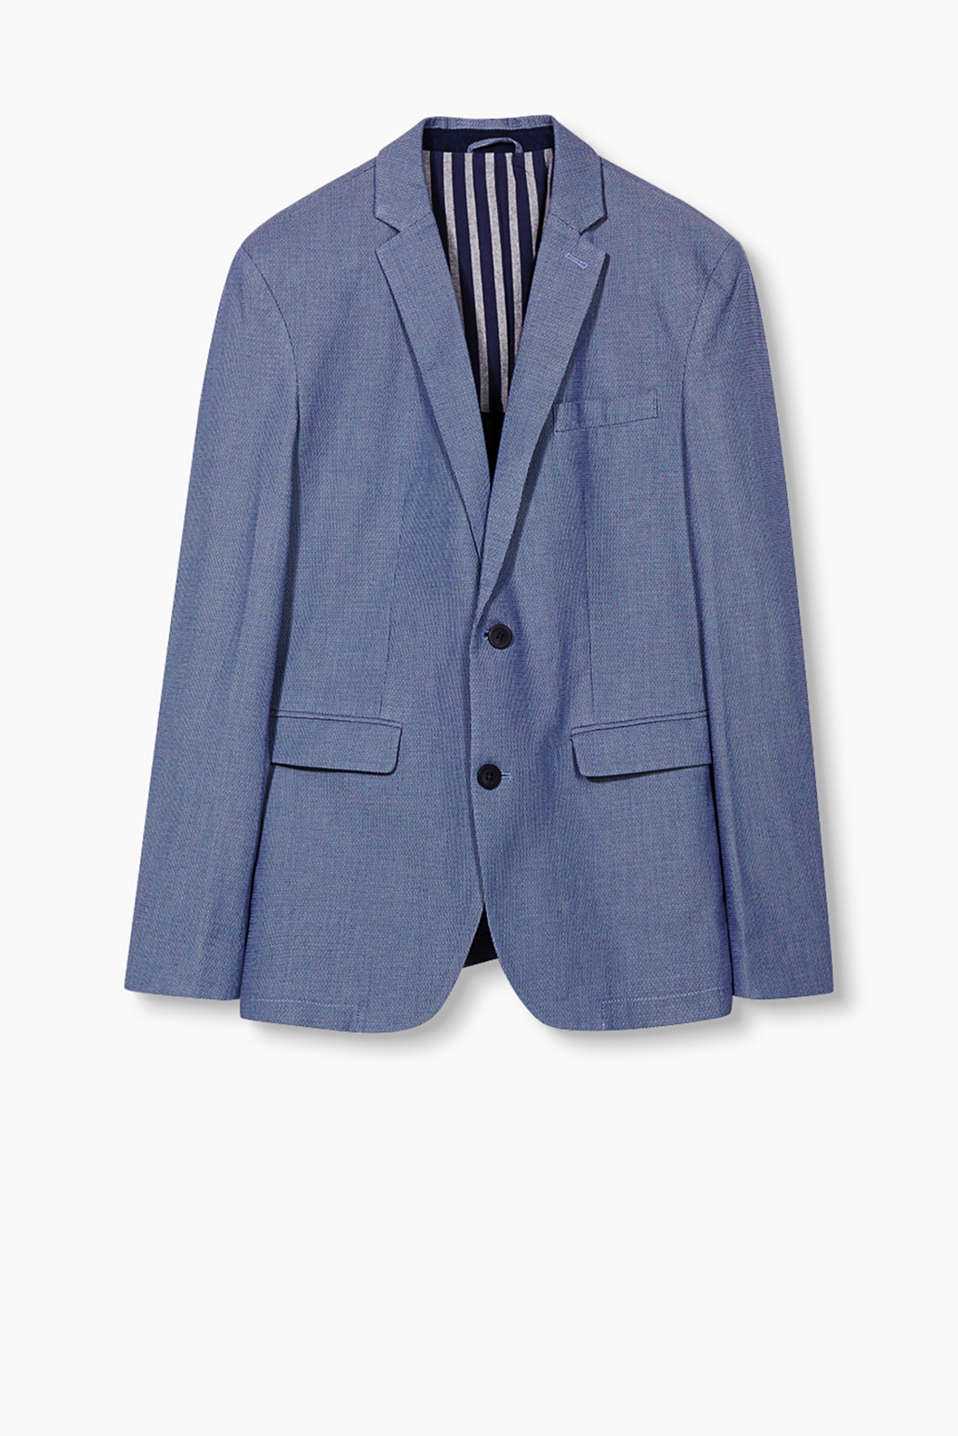 Smart/casual blazer with a two-tone texture